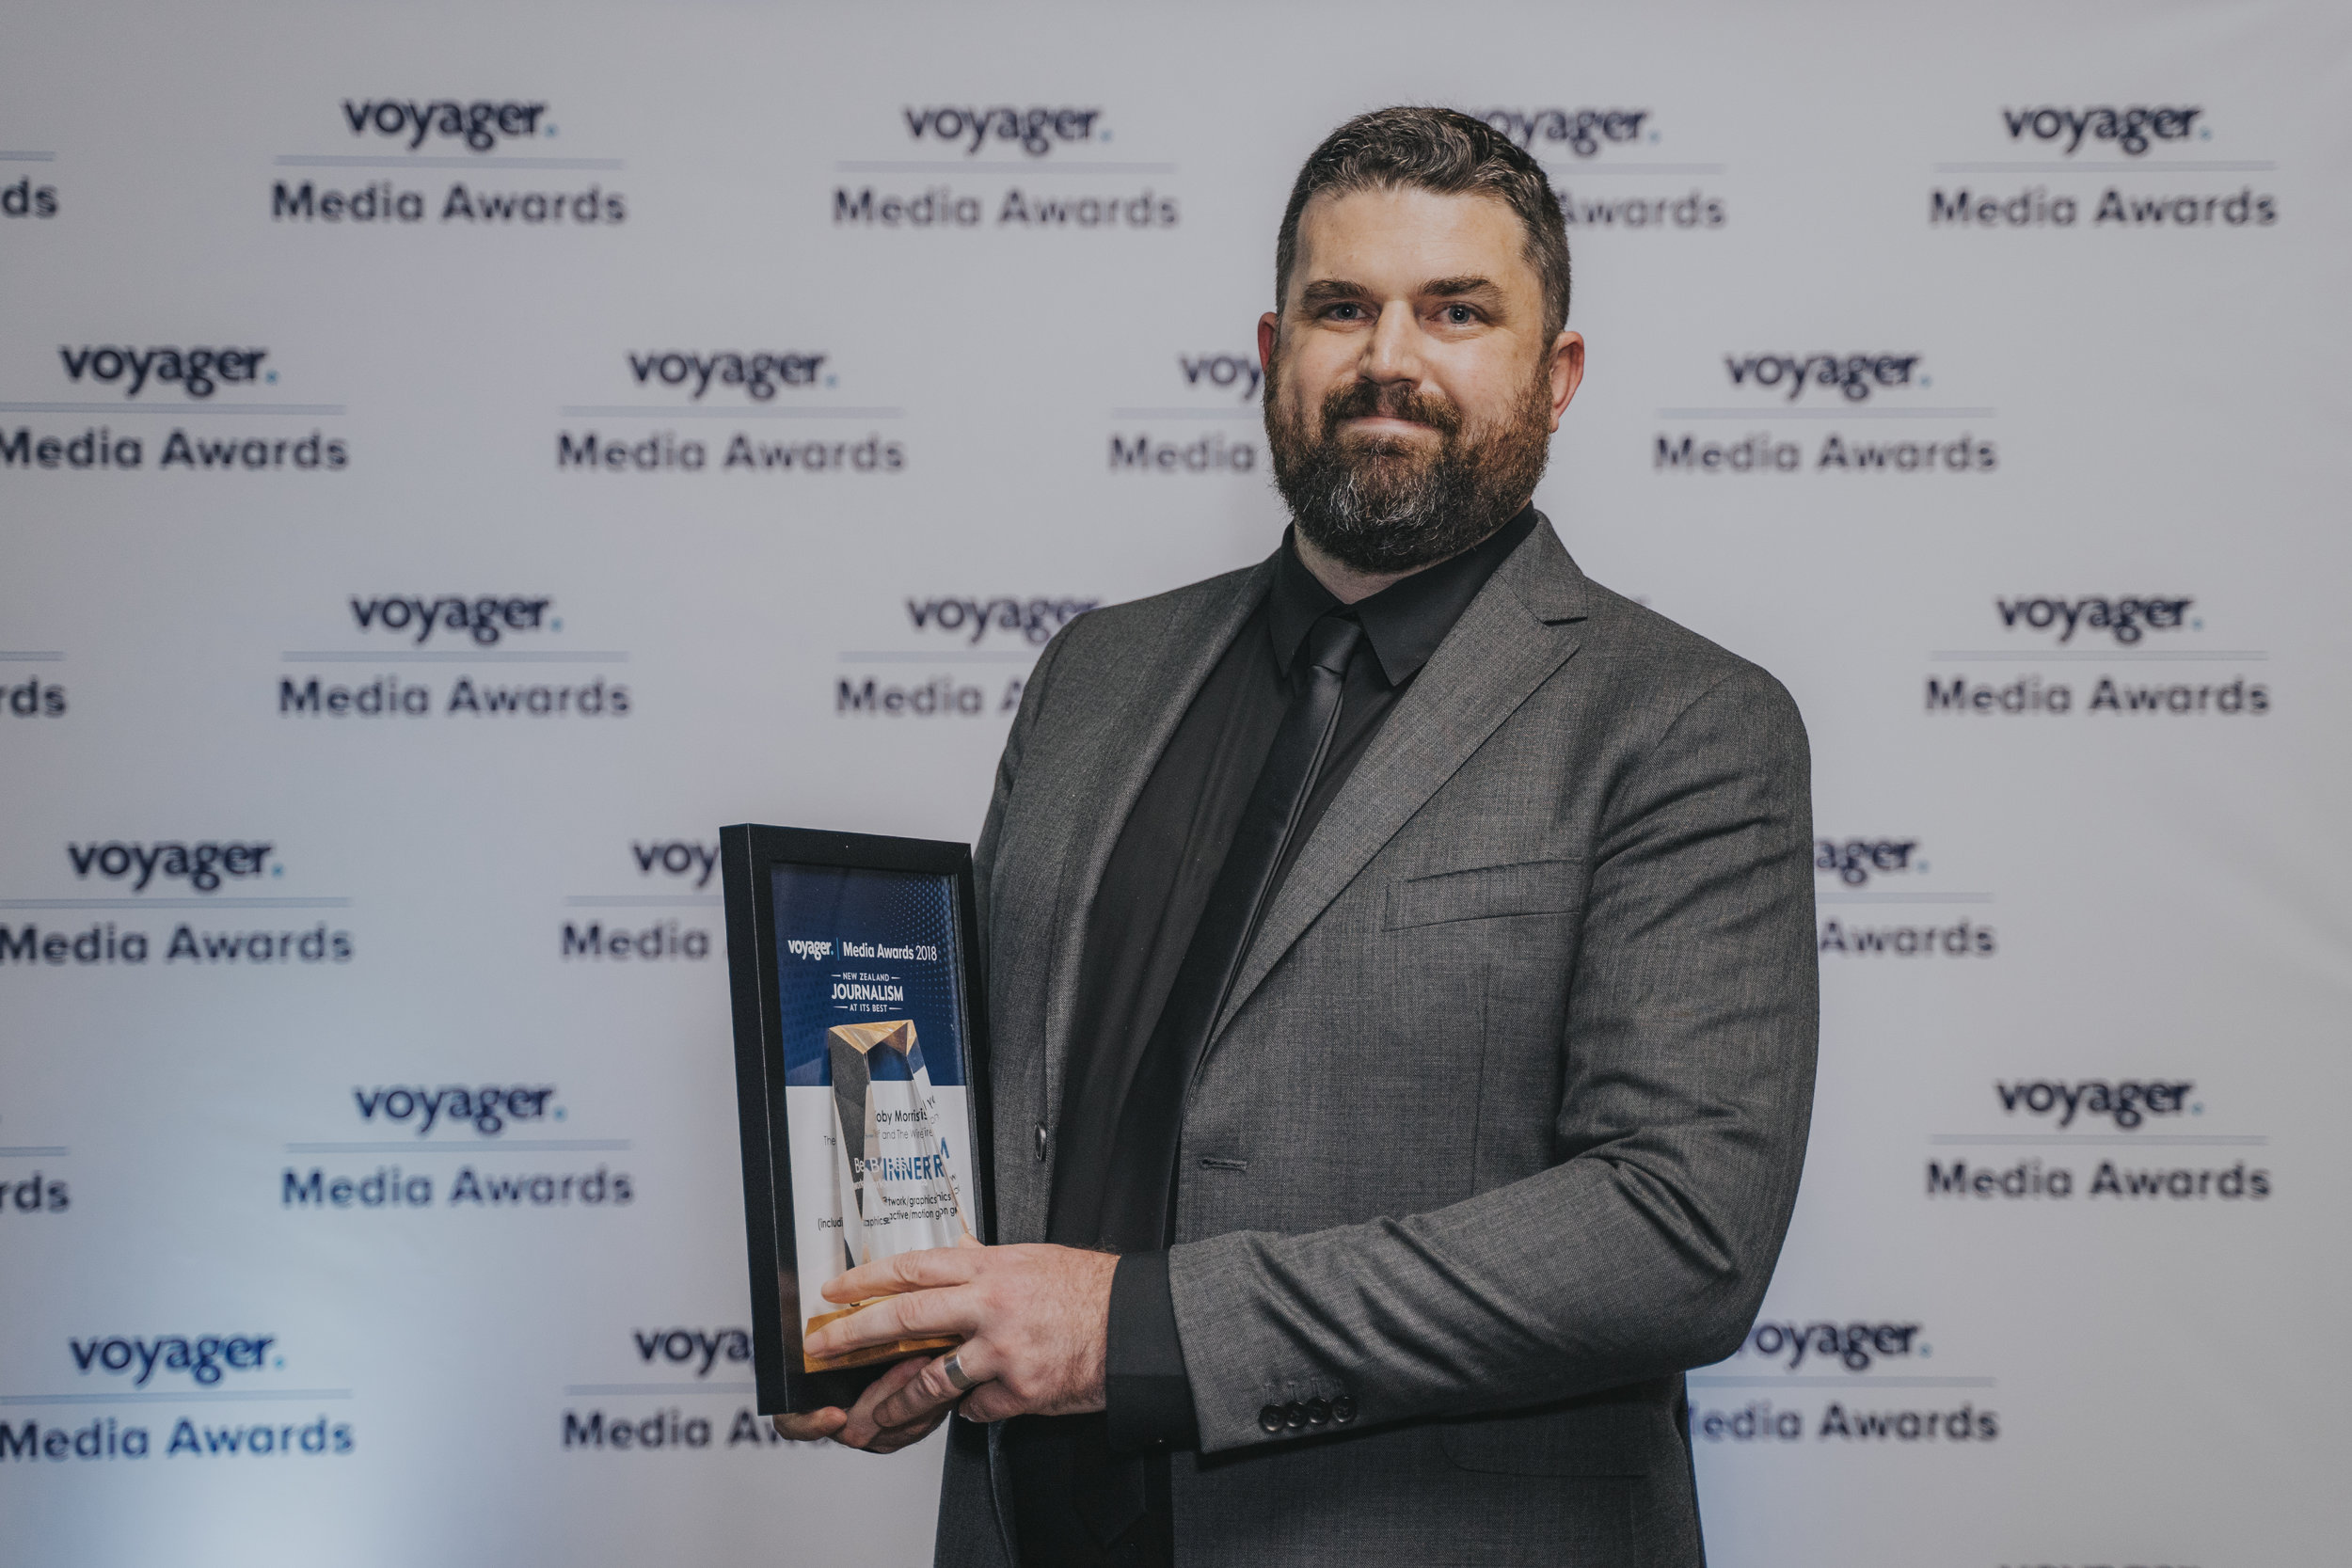 Voyager Media Awards 2018-126.JPG